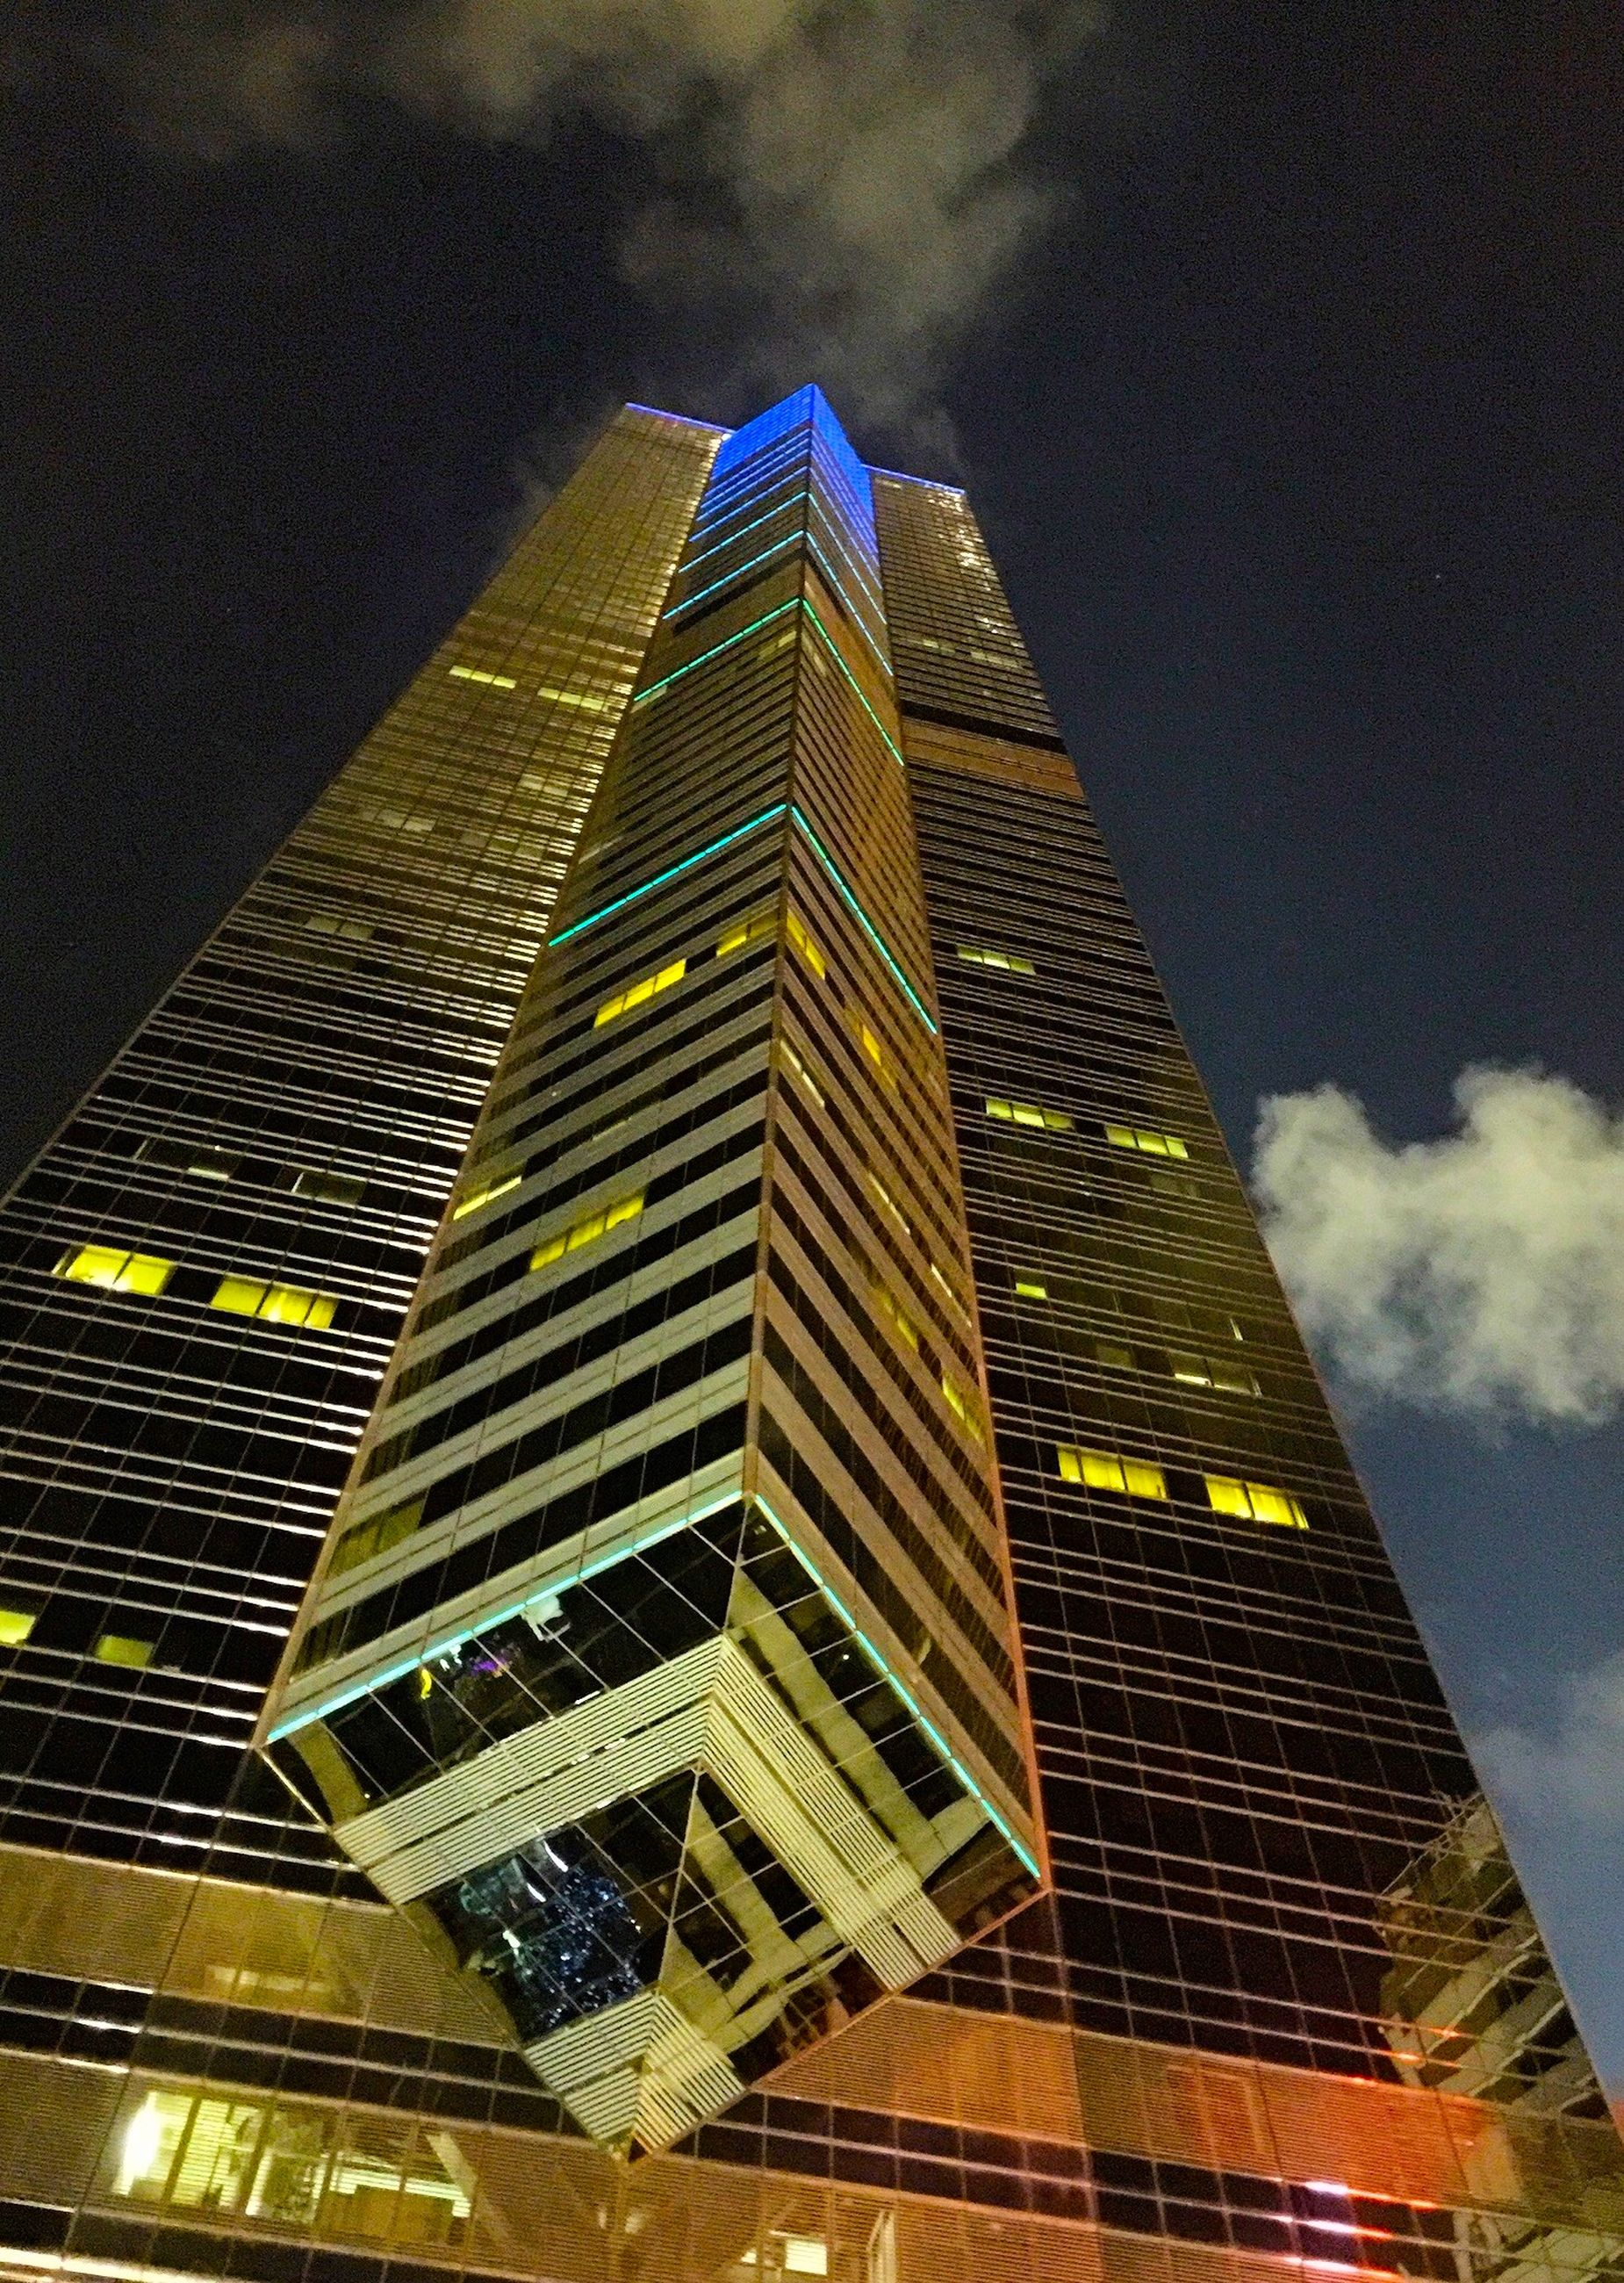 low angle view, architecture, built structure, building exterior, tall - high, tower, modern, illuminated, skyscraper, sky, city, night, office building, building, no people, outdoors, architectural feature, tall, famous place, pattern